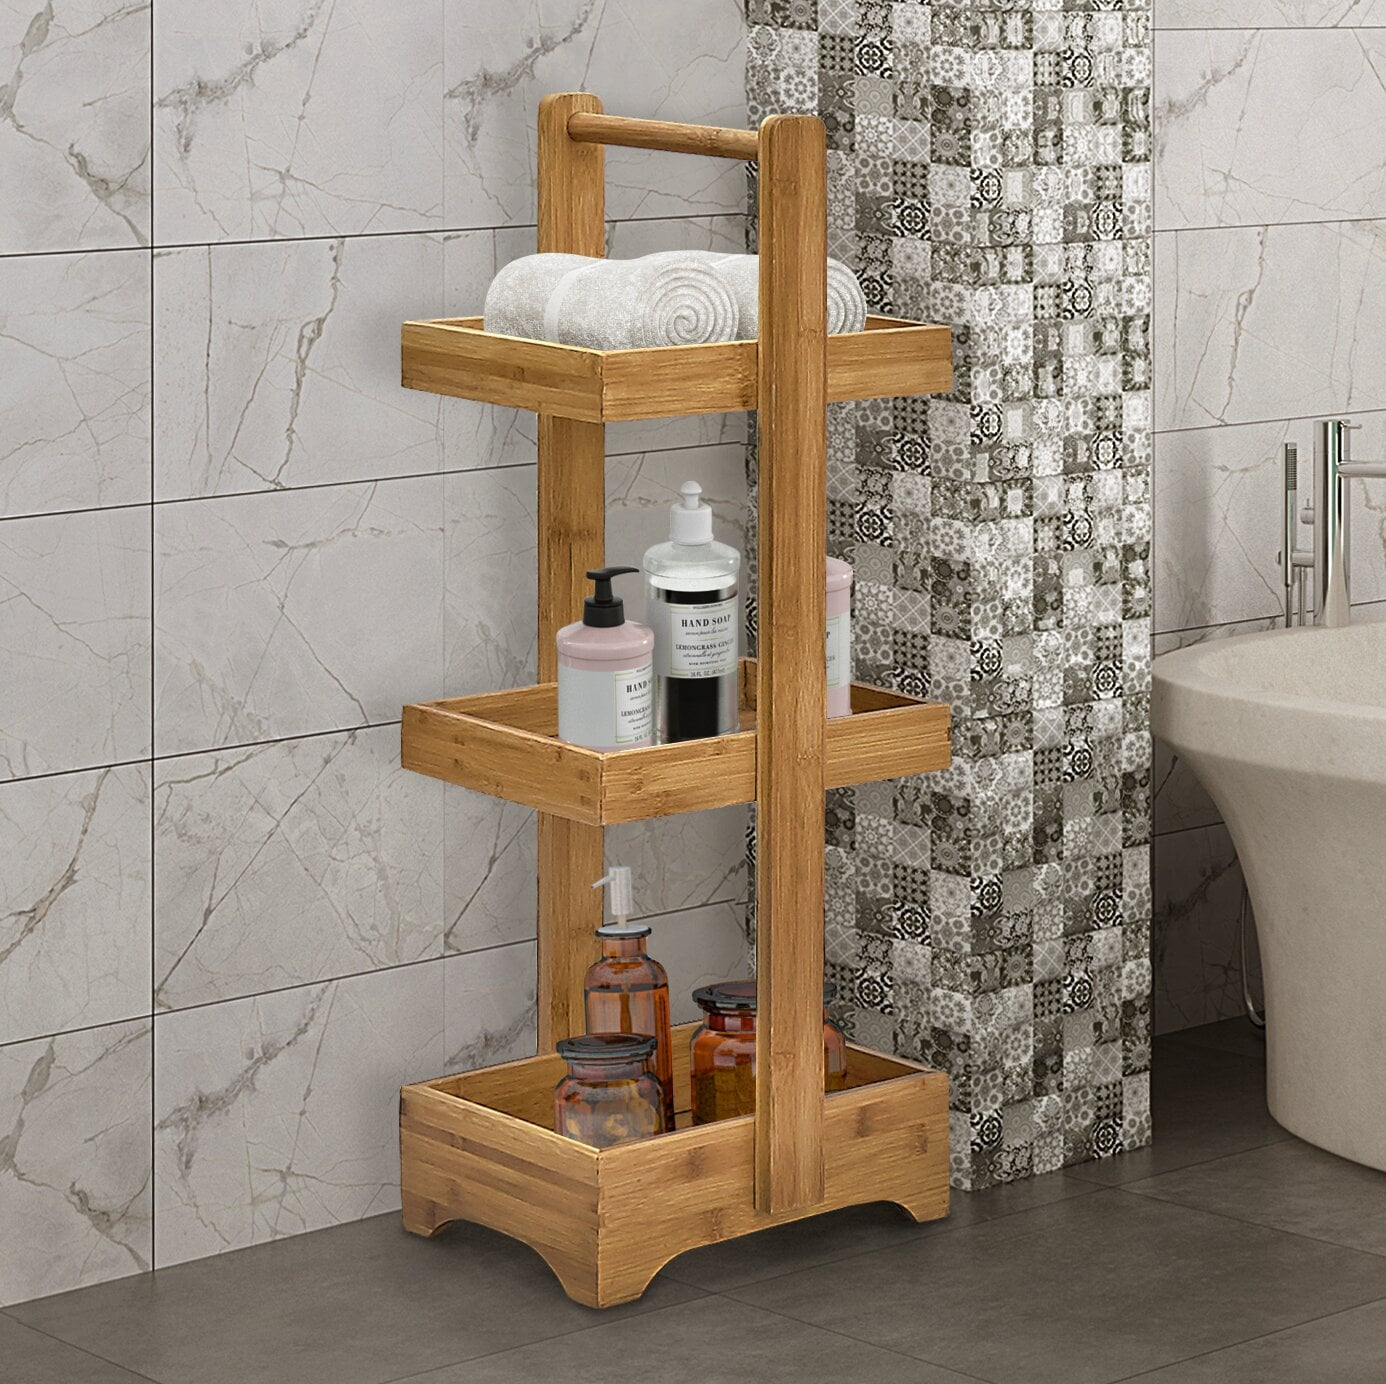 Braewyn Solid Wood Free Standing Bathroom Shelves Finally Declutter Your Bathroom With The Help Of These 19 Genius Storage Solutions Popsugar Home Photo 5